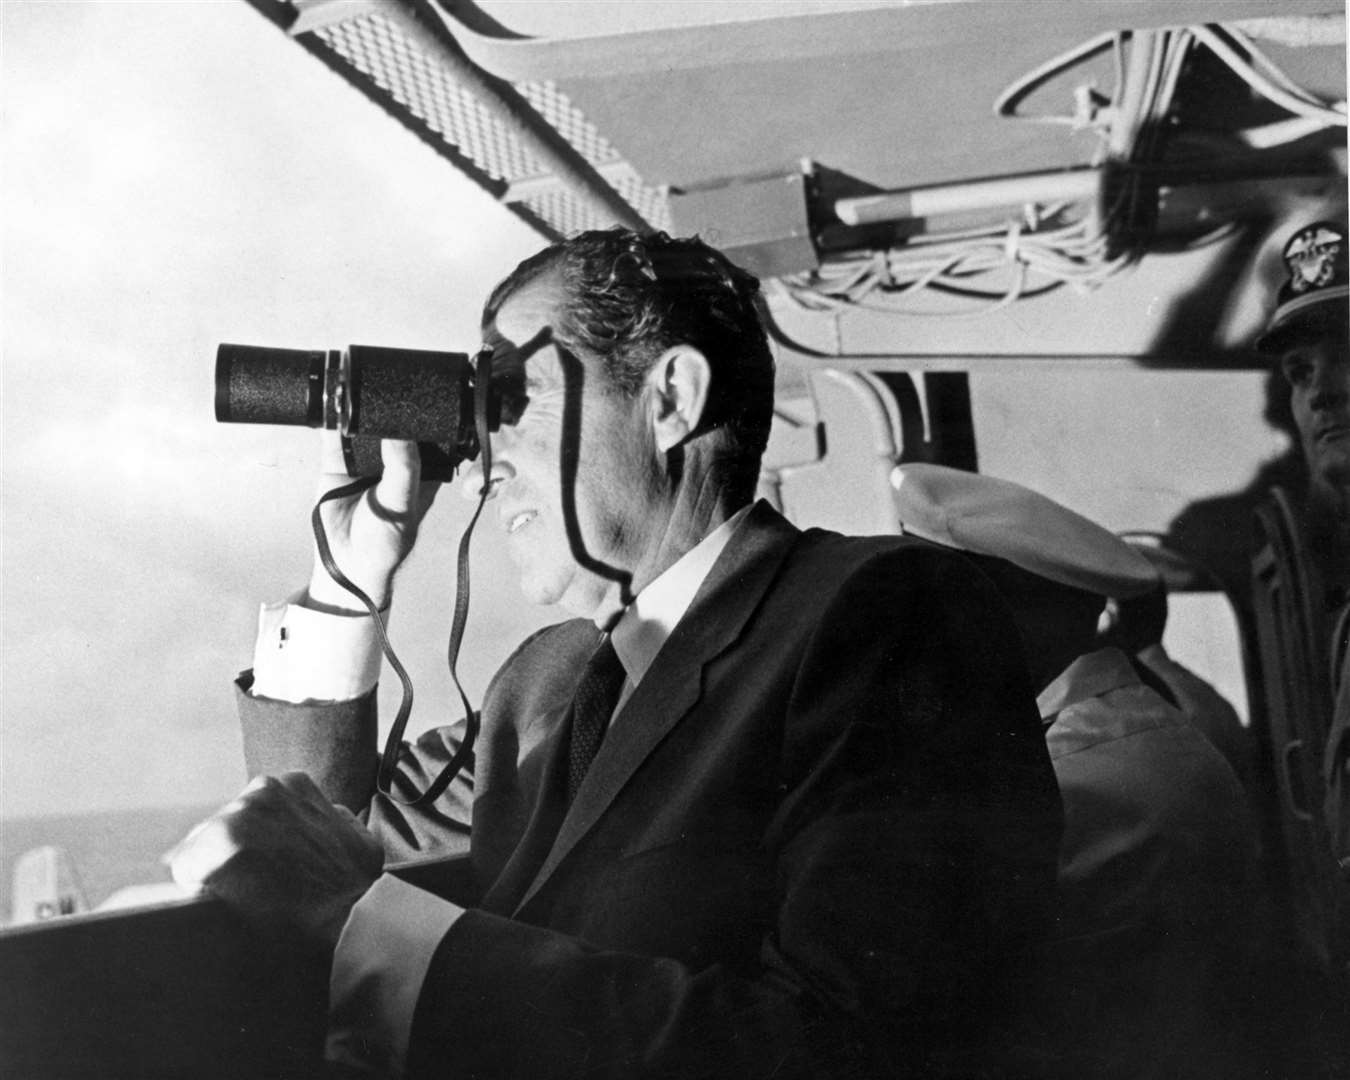 U.S. President Richard Milhous Nixon, aboard the U.S.S. Hornet aircraft carrier, used binoculars to watch the Apollo 11 Lunar Mission recovery. The recovery operation took place in the Pacific Ocean where Navy para-rescue men recovered the capsule housing the 3-man Apollo 11 crew. The crew was airlifted to safety aboard the U.S.S. Hornet, where they were quartered in a Mobile Quarantine Facility (MQF) for 21 days post mission. Picture: NASA (14042150)